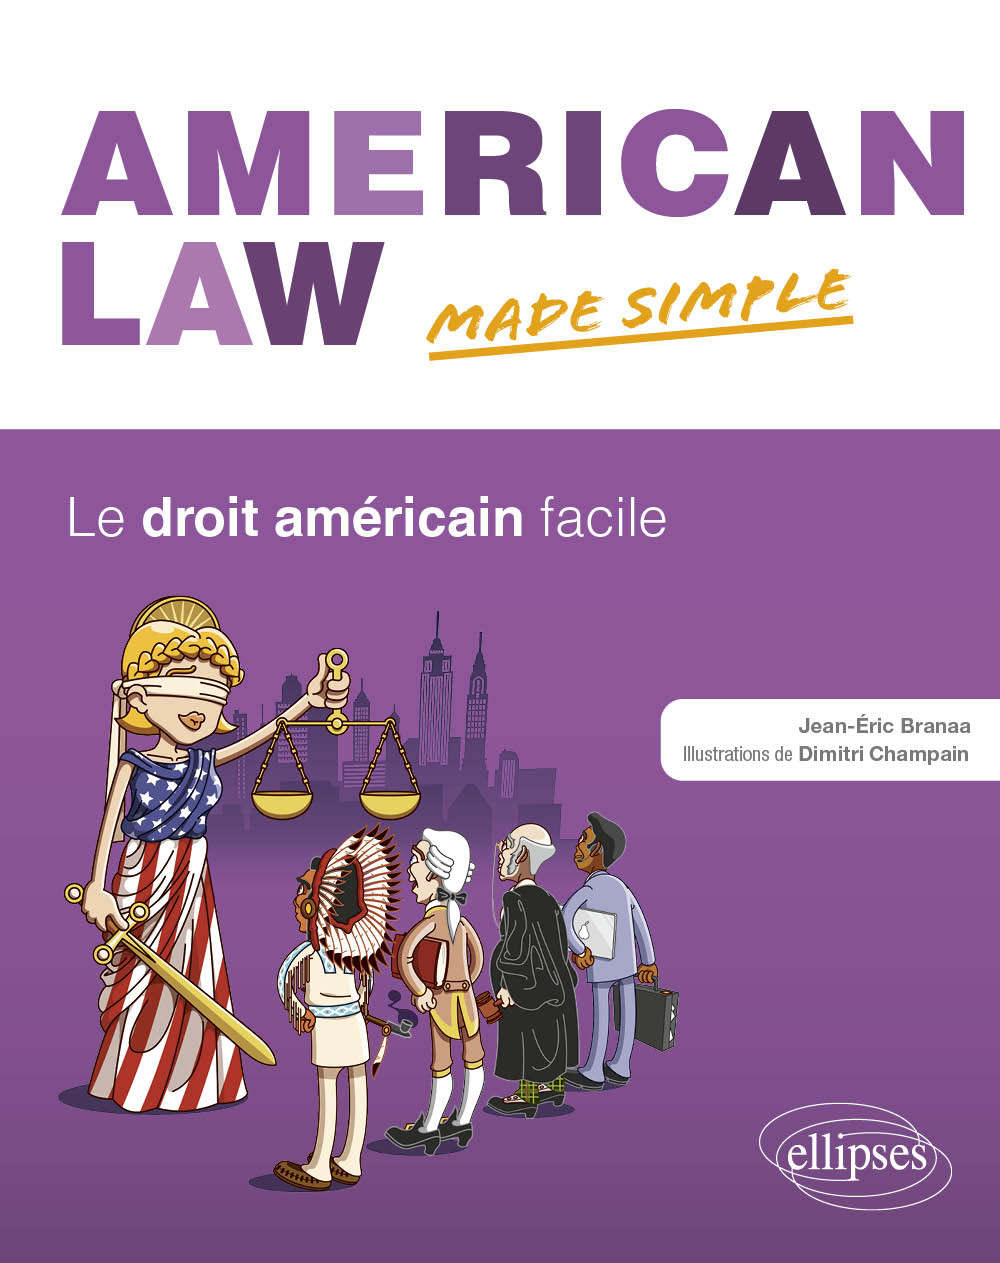 American Law Made Simple. Le droit américain facile